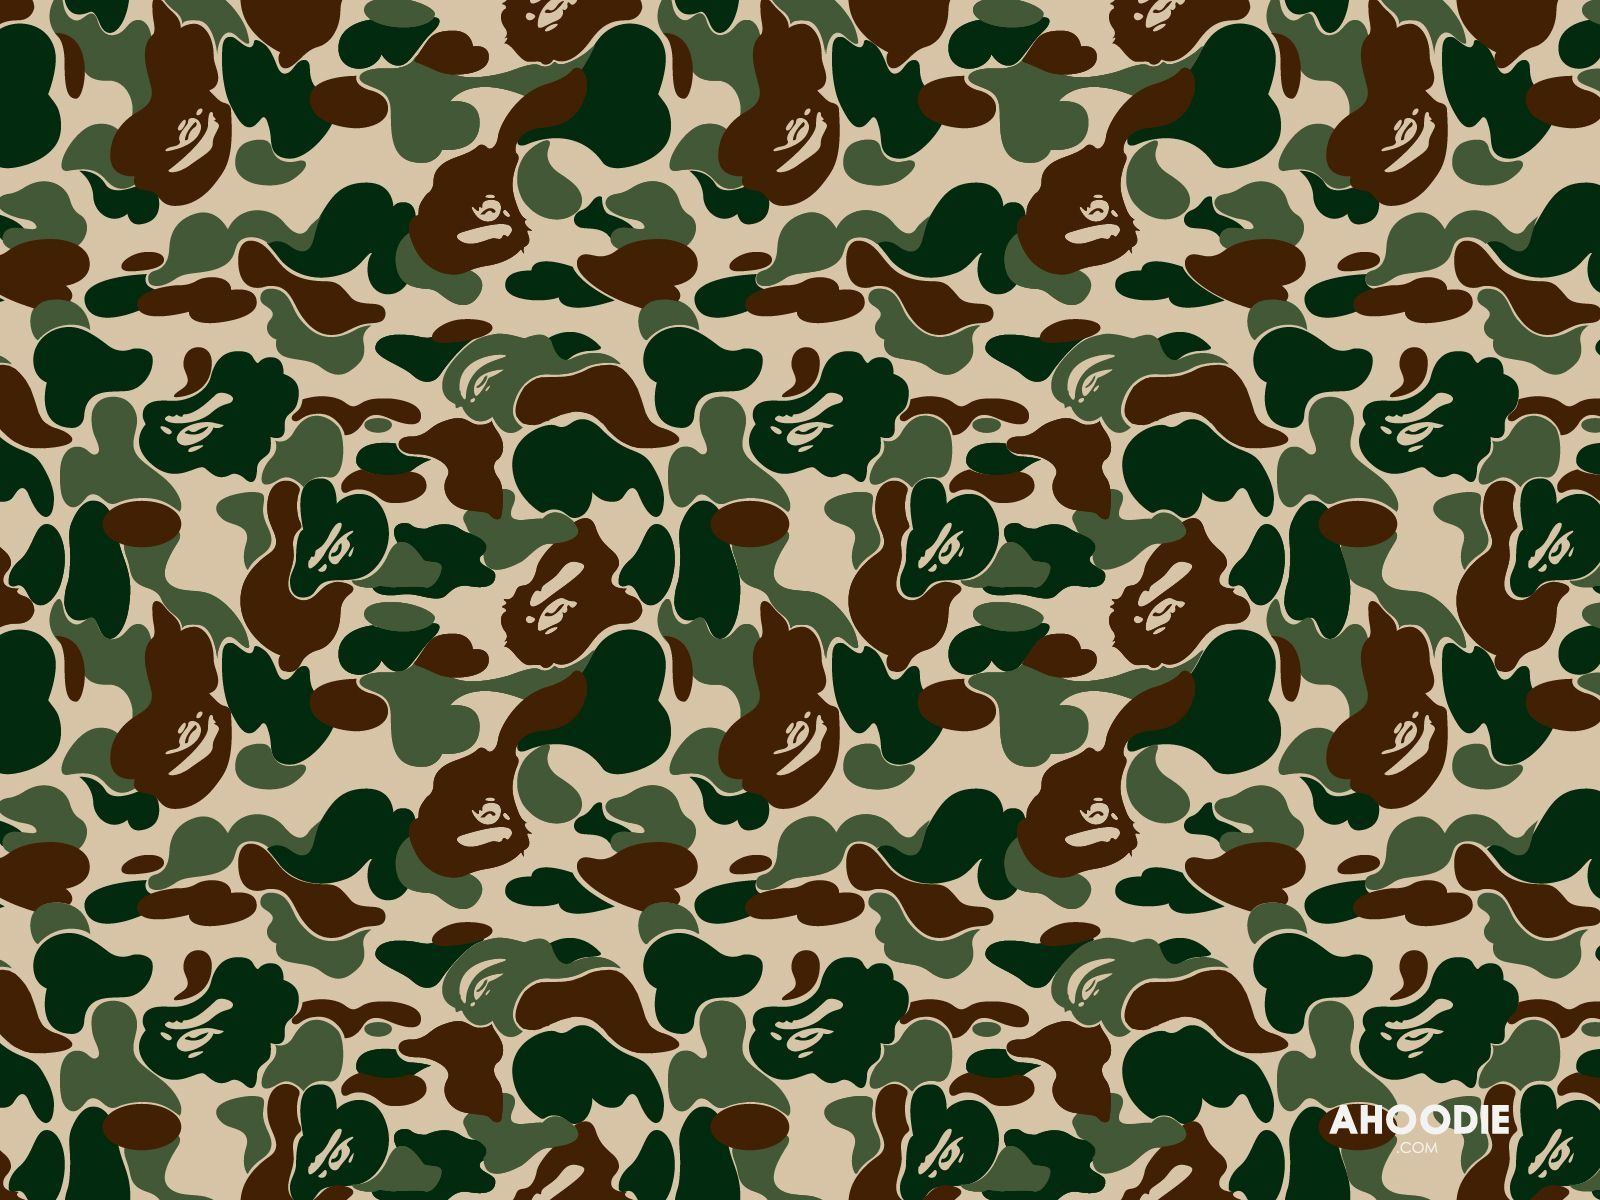 HD Realtree Camo Wallpapers   HD Wallpapers   Pinterest